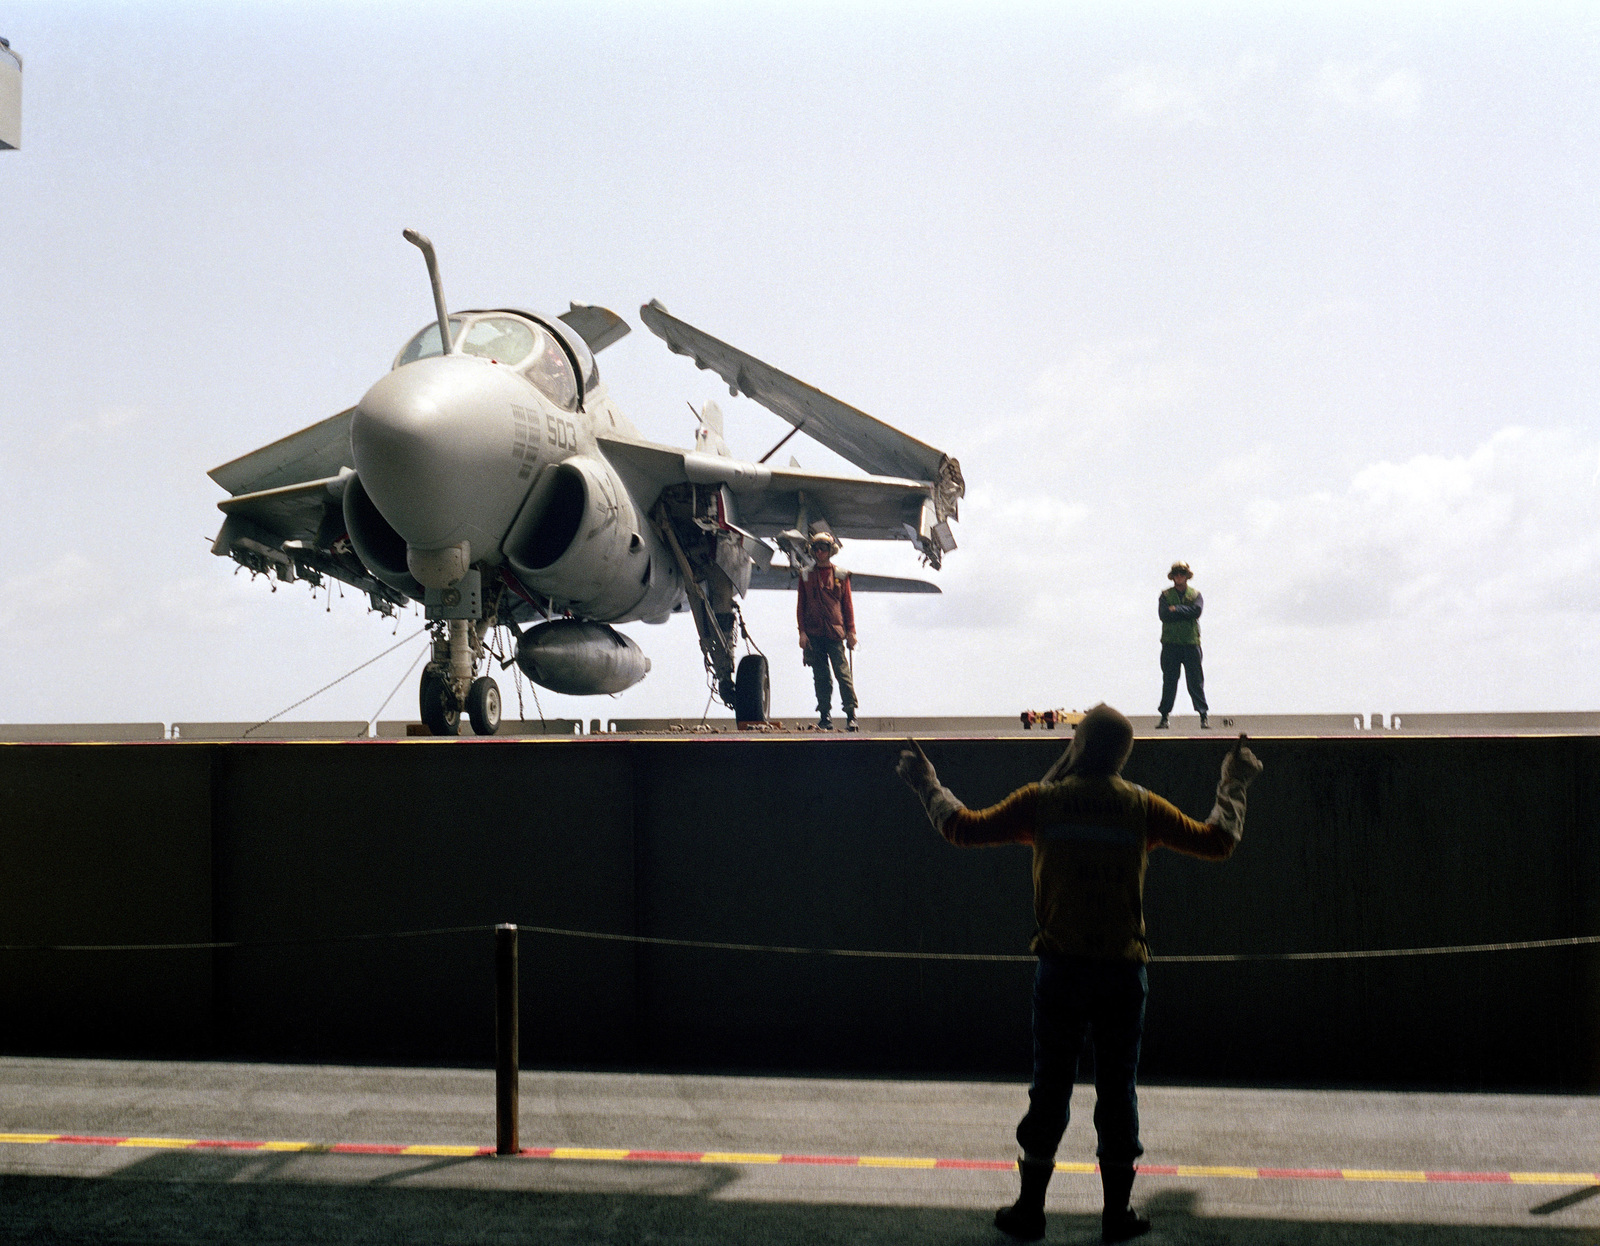 A crew member on an elevator signals to flight deck crew members as they stand beside as A-6E Intruder aircraft during a general quarters drill aboard the aircraft carrier USS KITTY HAWK (CV 63)